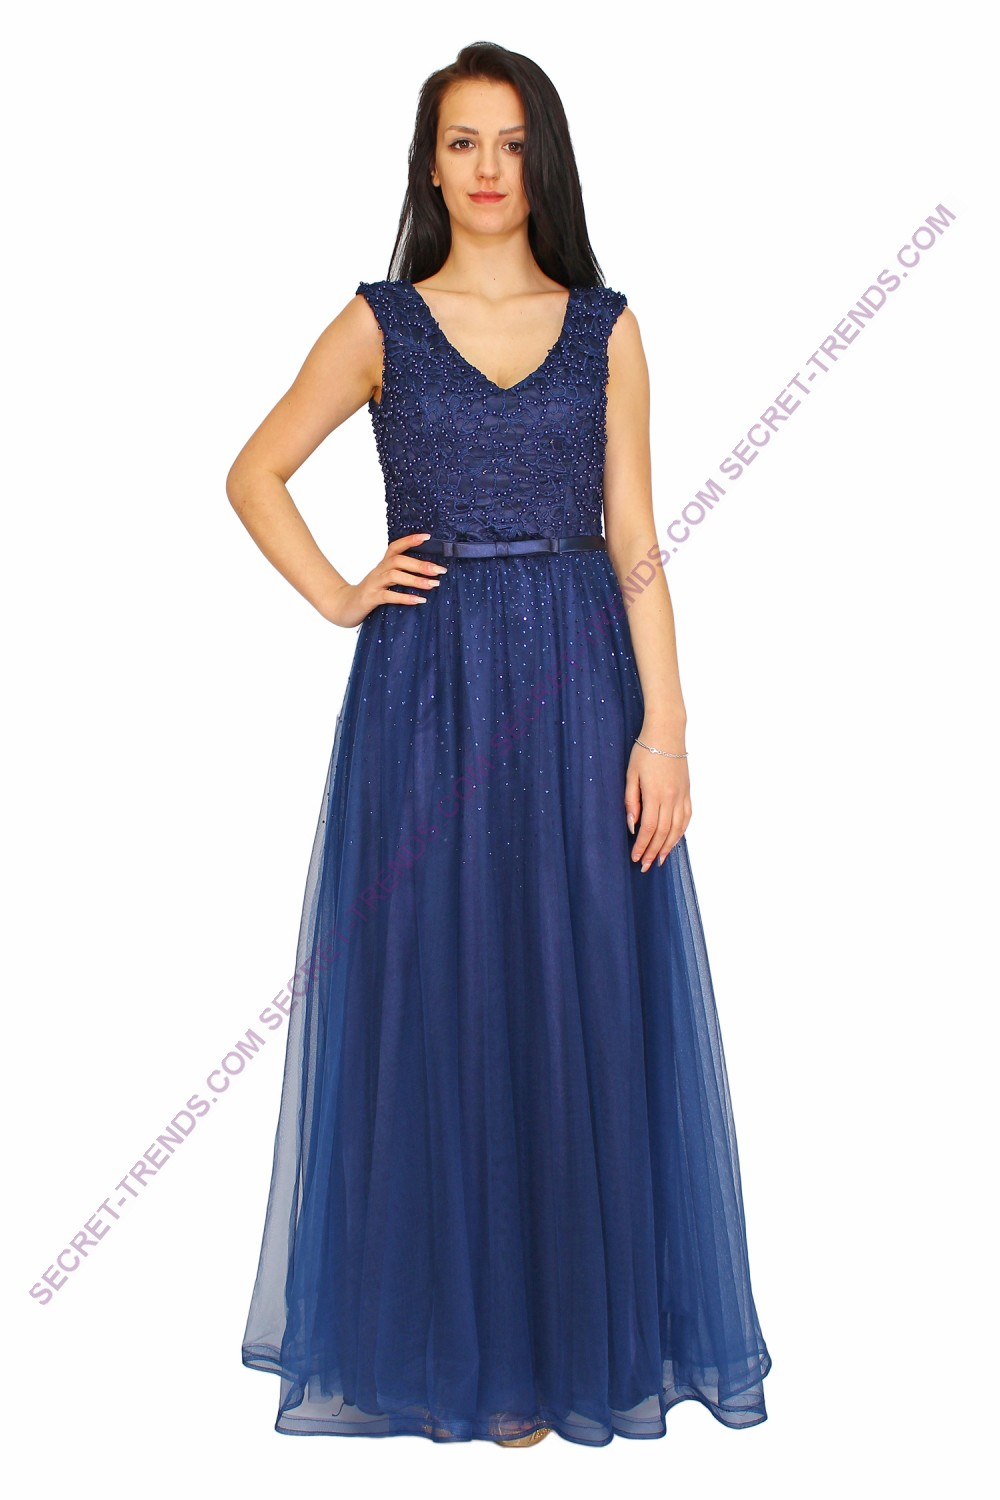 Juju & Christine evening dress with decorative trim and rhinestone ...